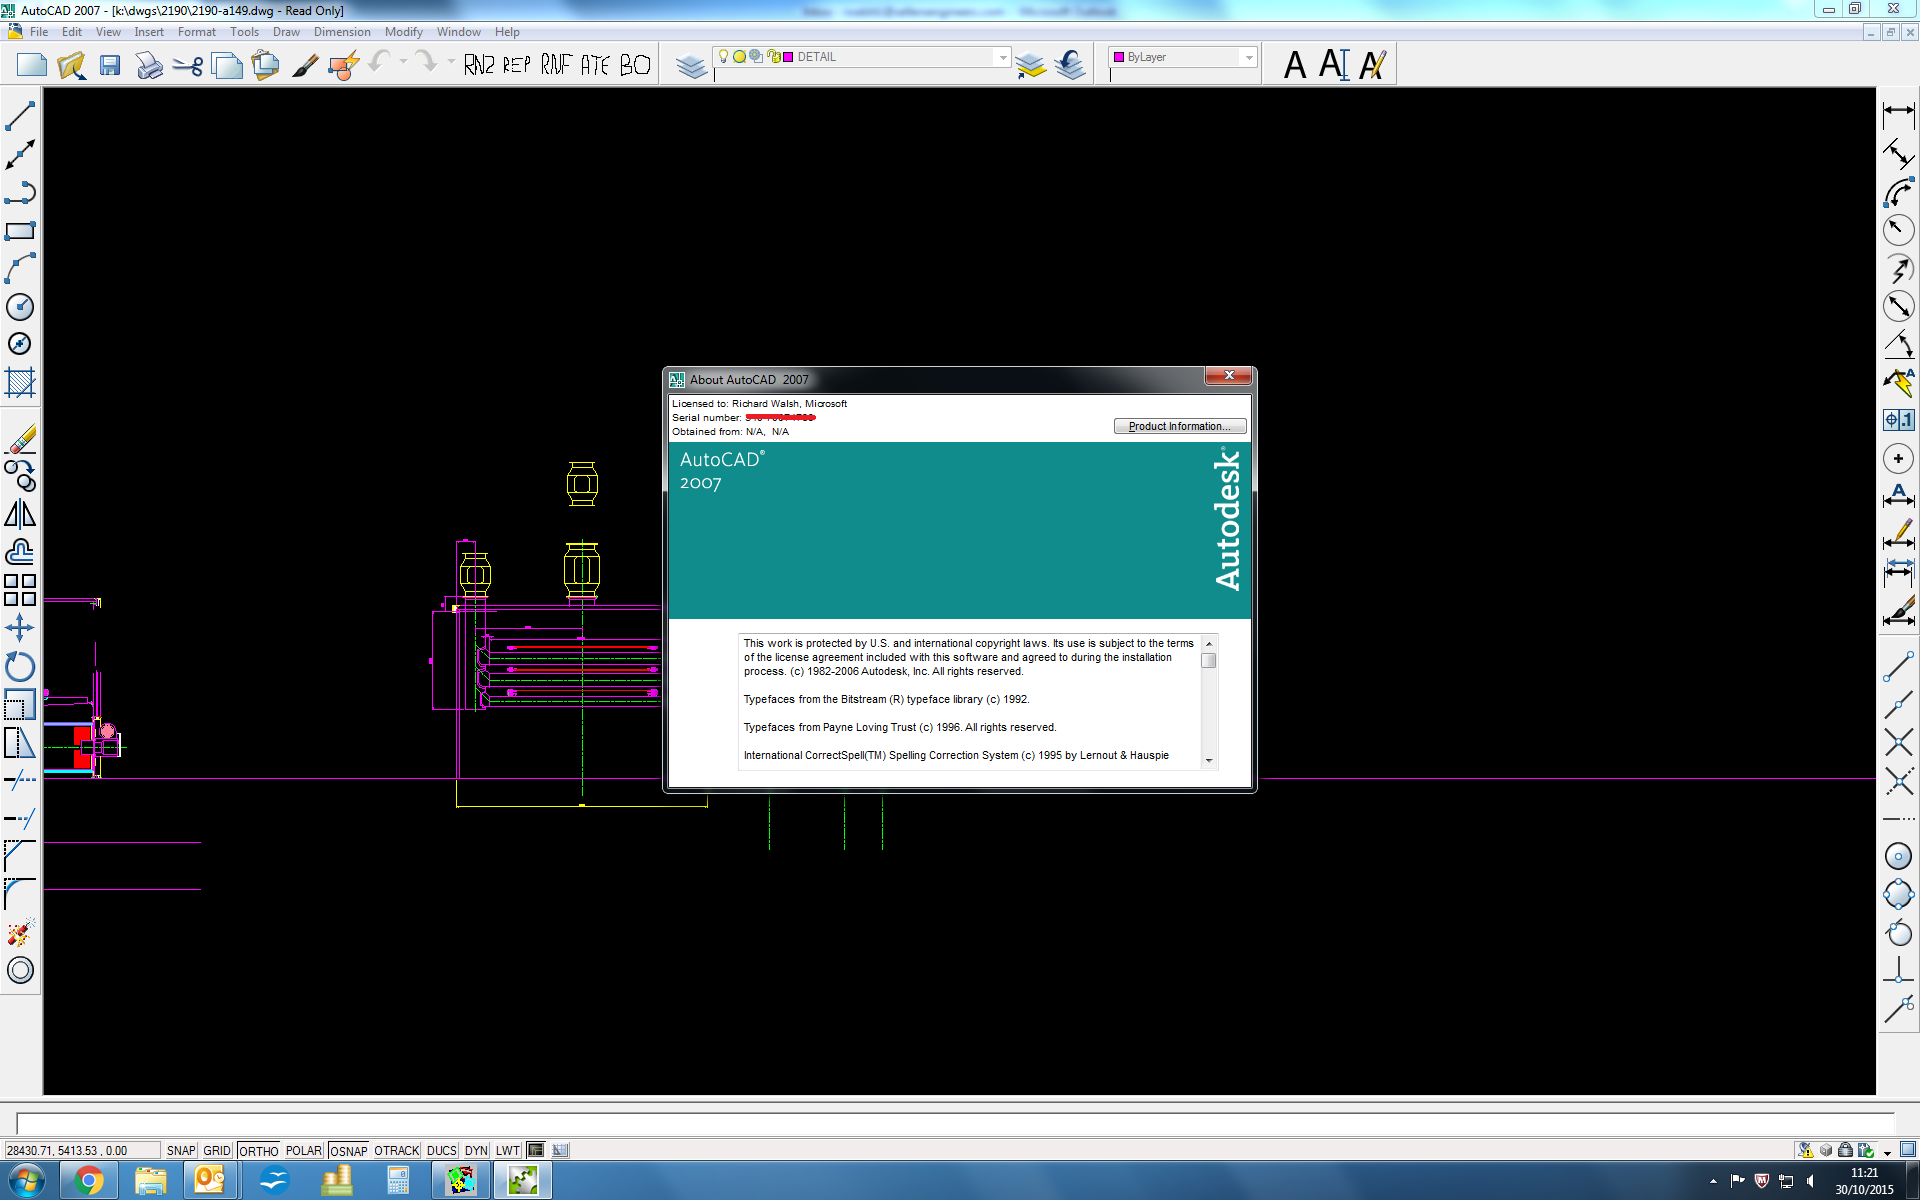 autocad 2007 compatibility issues with windows 10